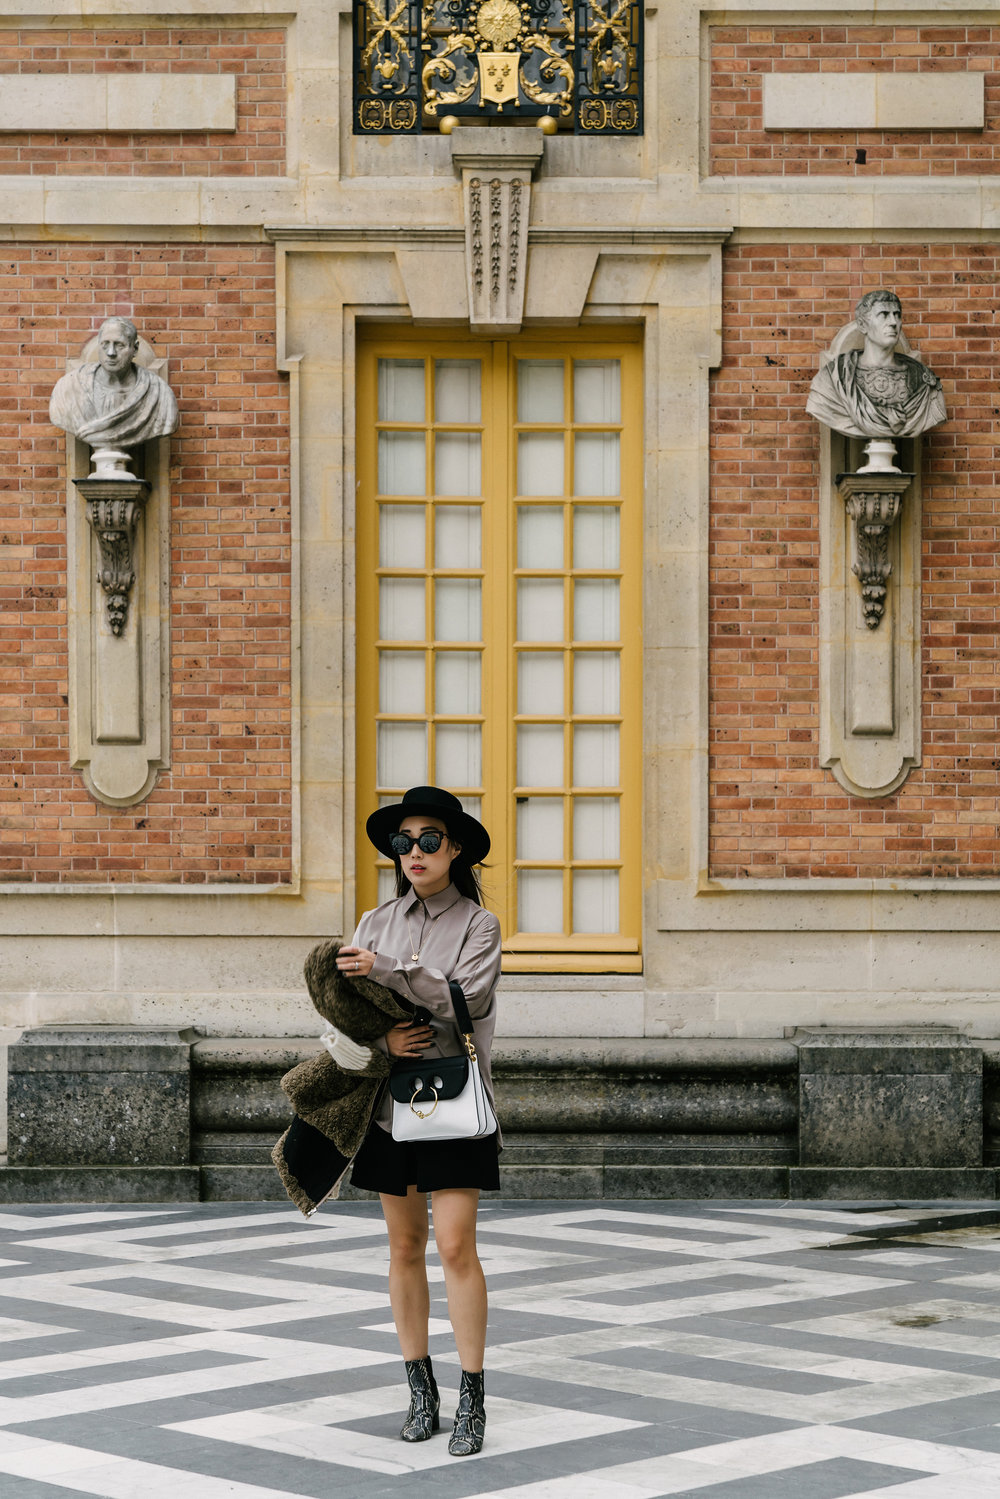 Isabel Marant Jacket ,  Lie Sang Bong  Top,  Balenciaga Skirt ,  Isabel Marant Boots ,  J.W.Anderson Bag ,  Janessa Leone Hat ,  Fendi Sunglasses ,  Cartier Necklace